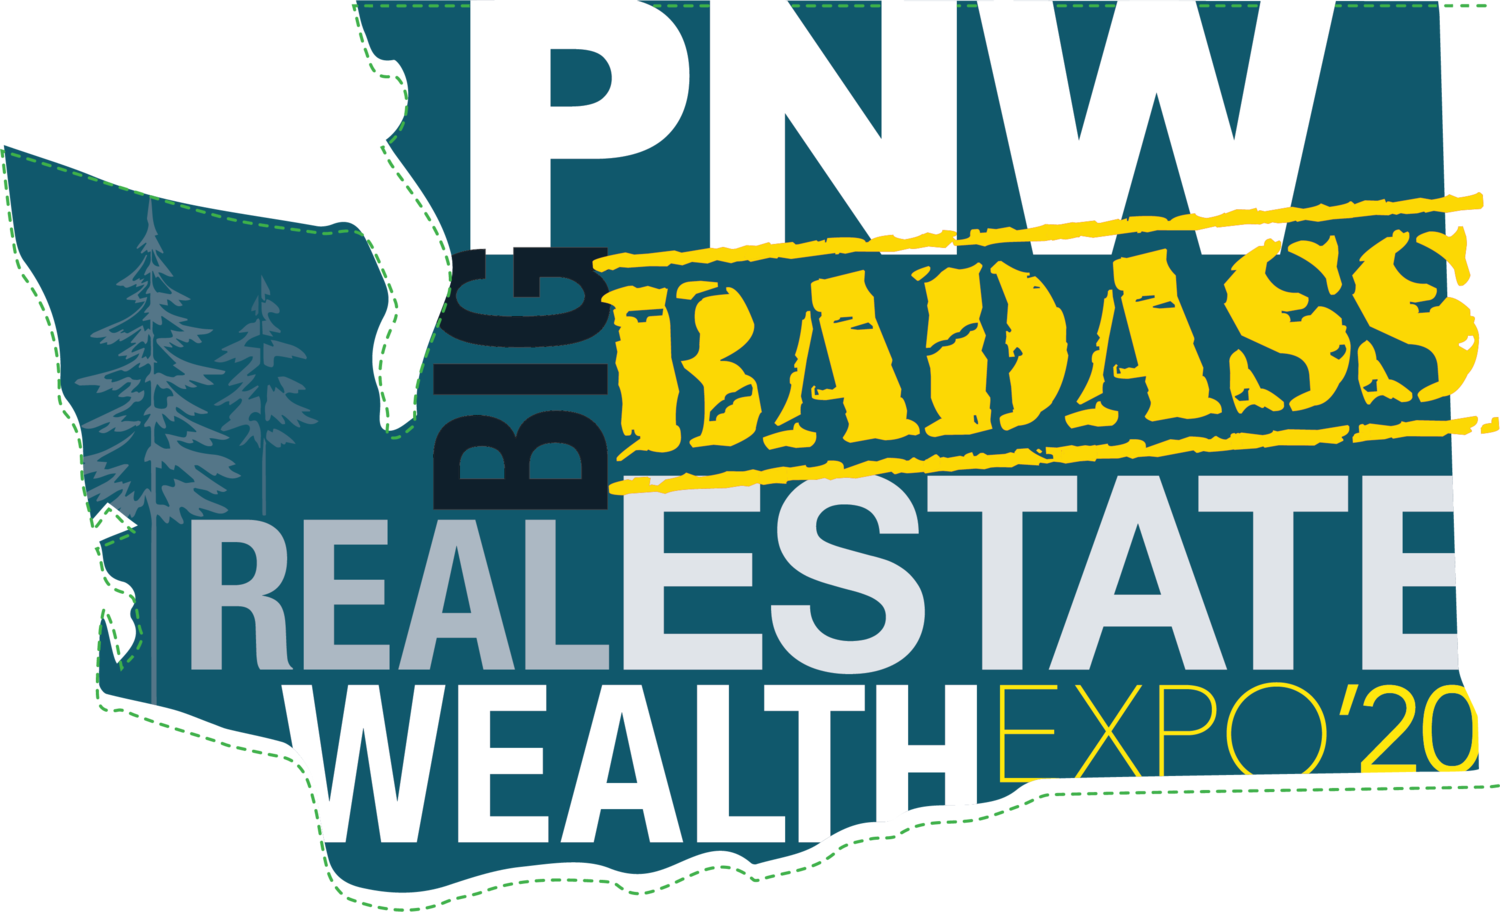 PNW Big Badass Real Estate Wealth Expo 2020